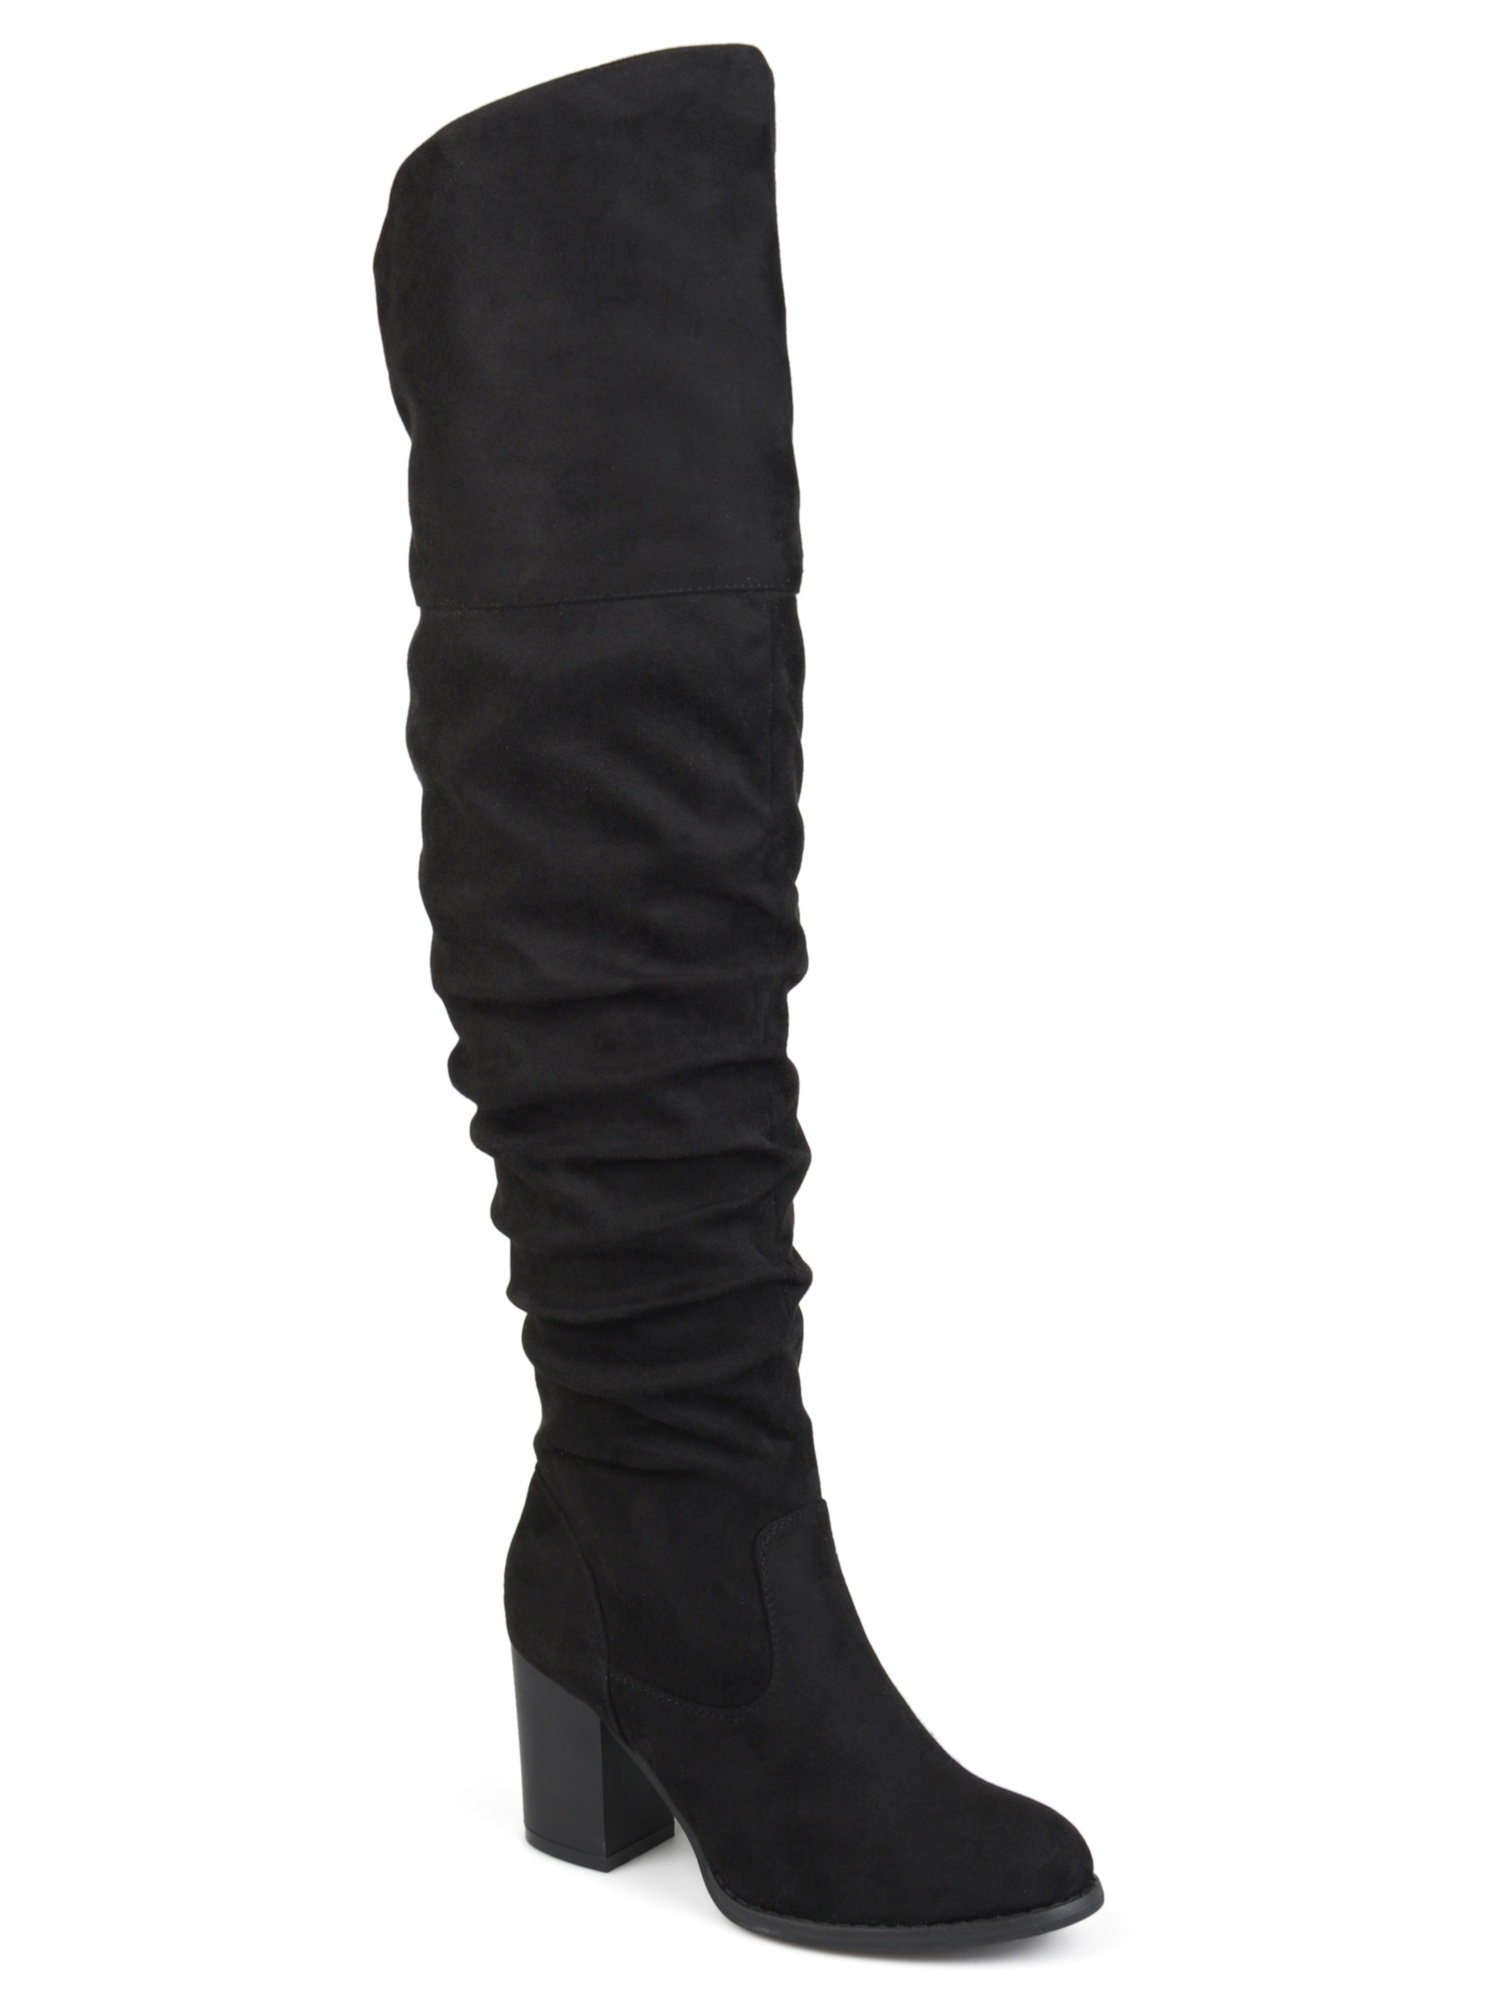 780aaf566a7 Brinley Co. Women s Extra Wide Calf Ruched Stacked Heel Faux Suede Over-the-knee  Boots - Walmart.com